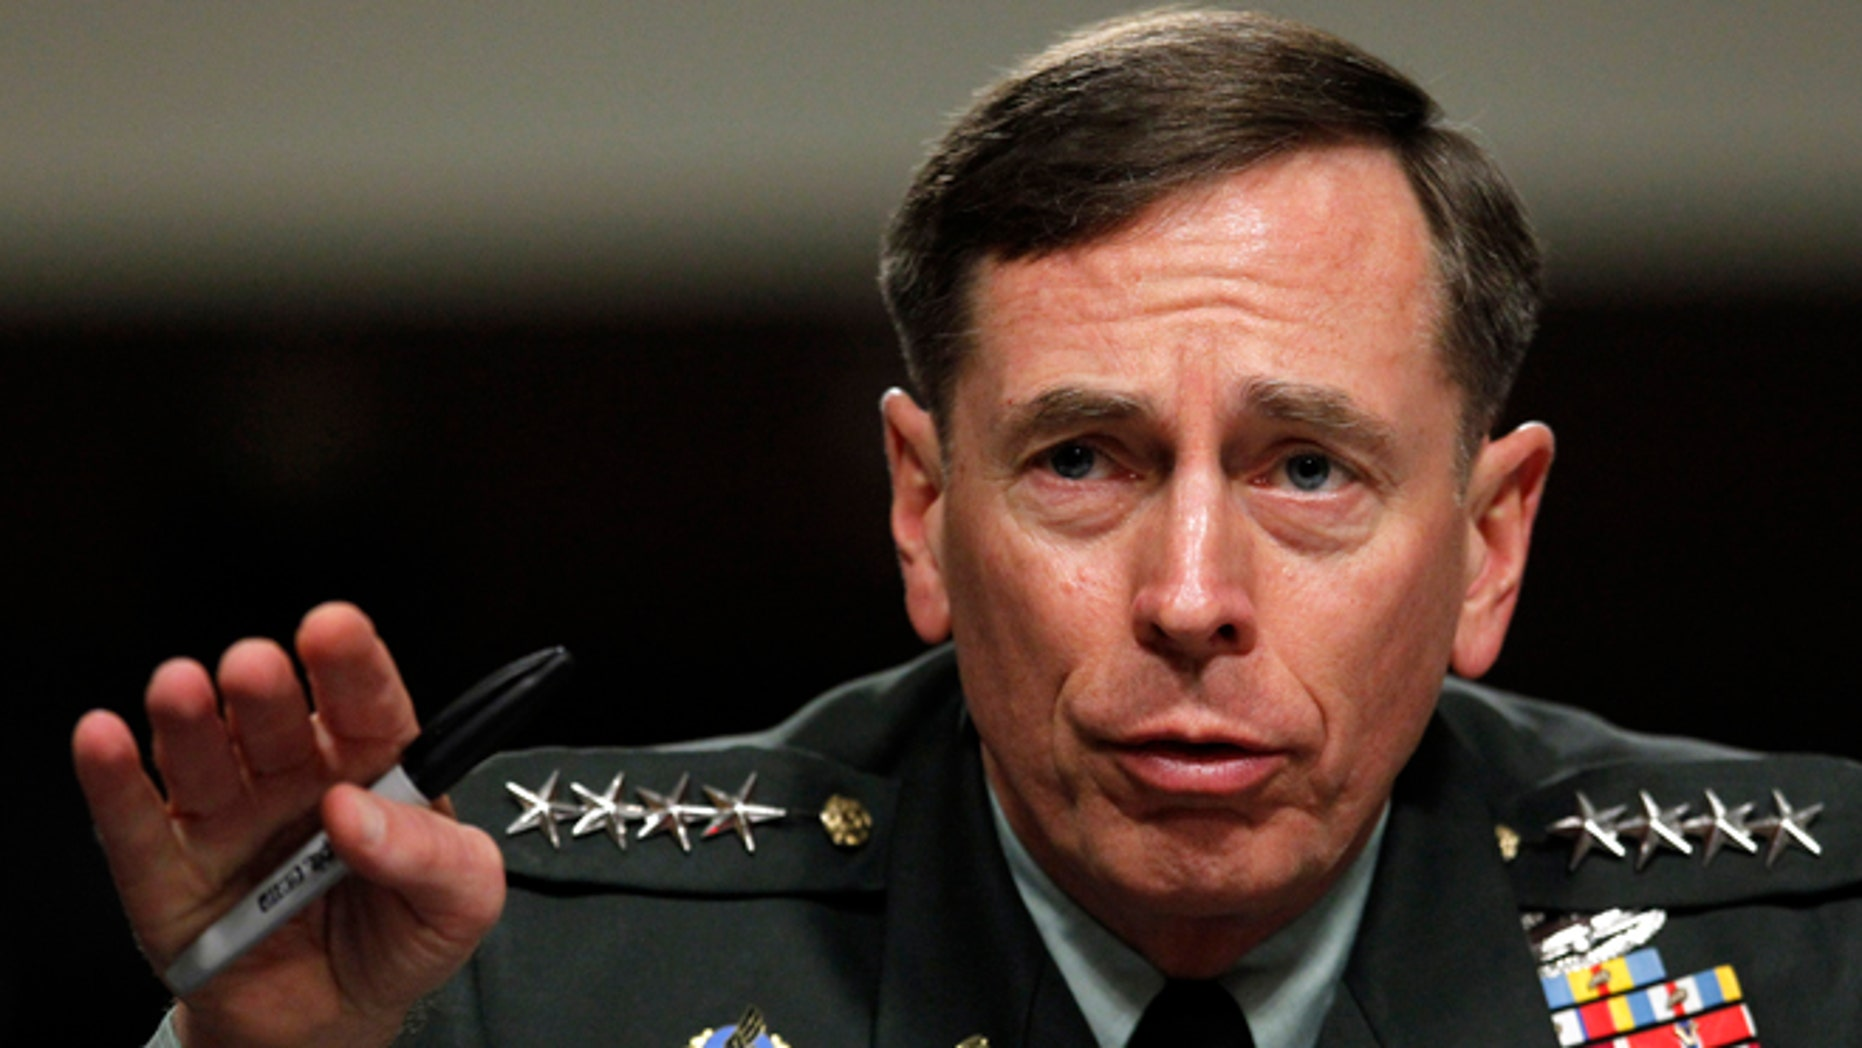 June 29, 2012: In this file photo, Gen. David Petraeus testifies before the Senate Armed Services Committee on Capitol Hill in Washington.